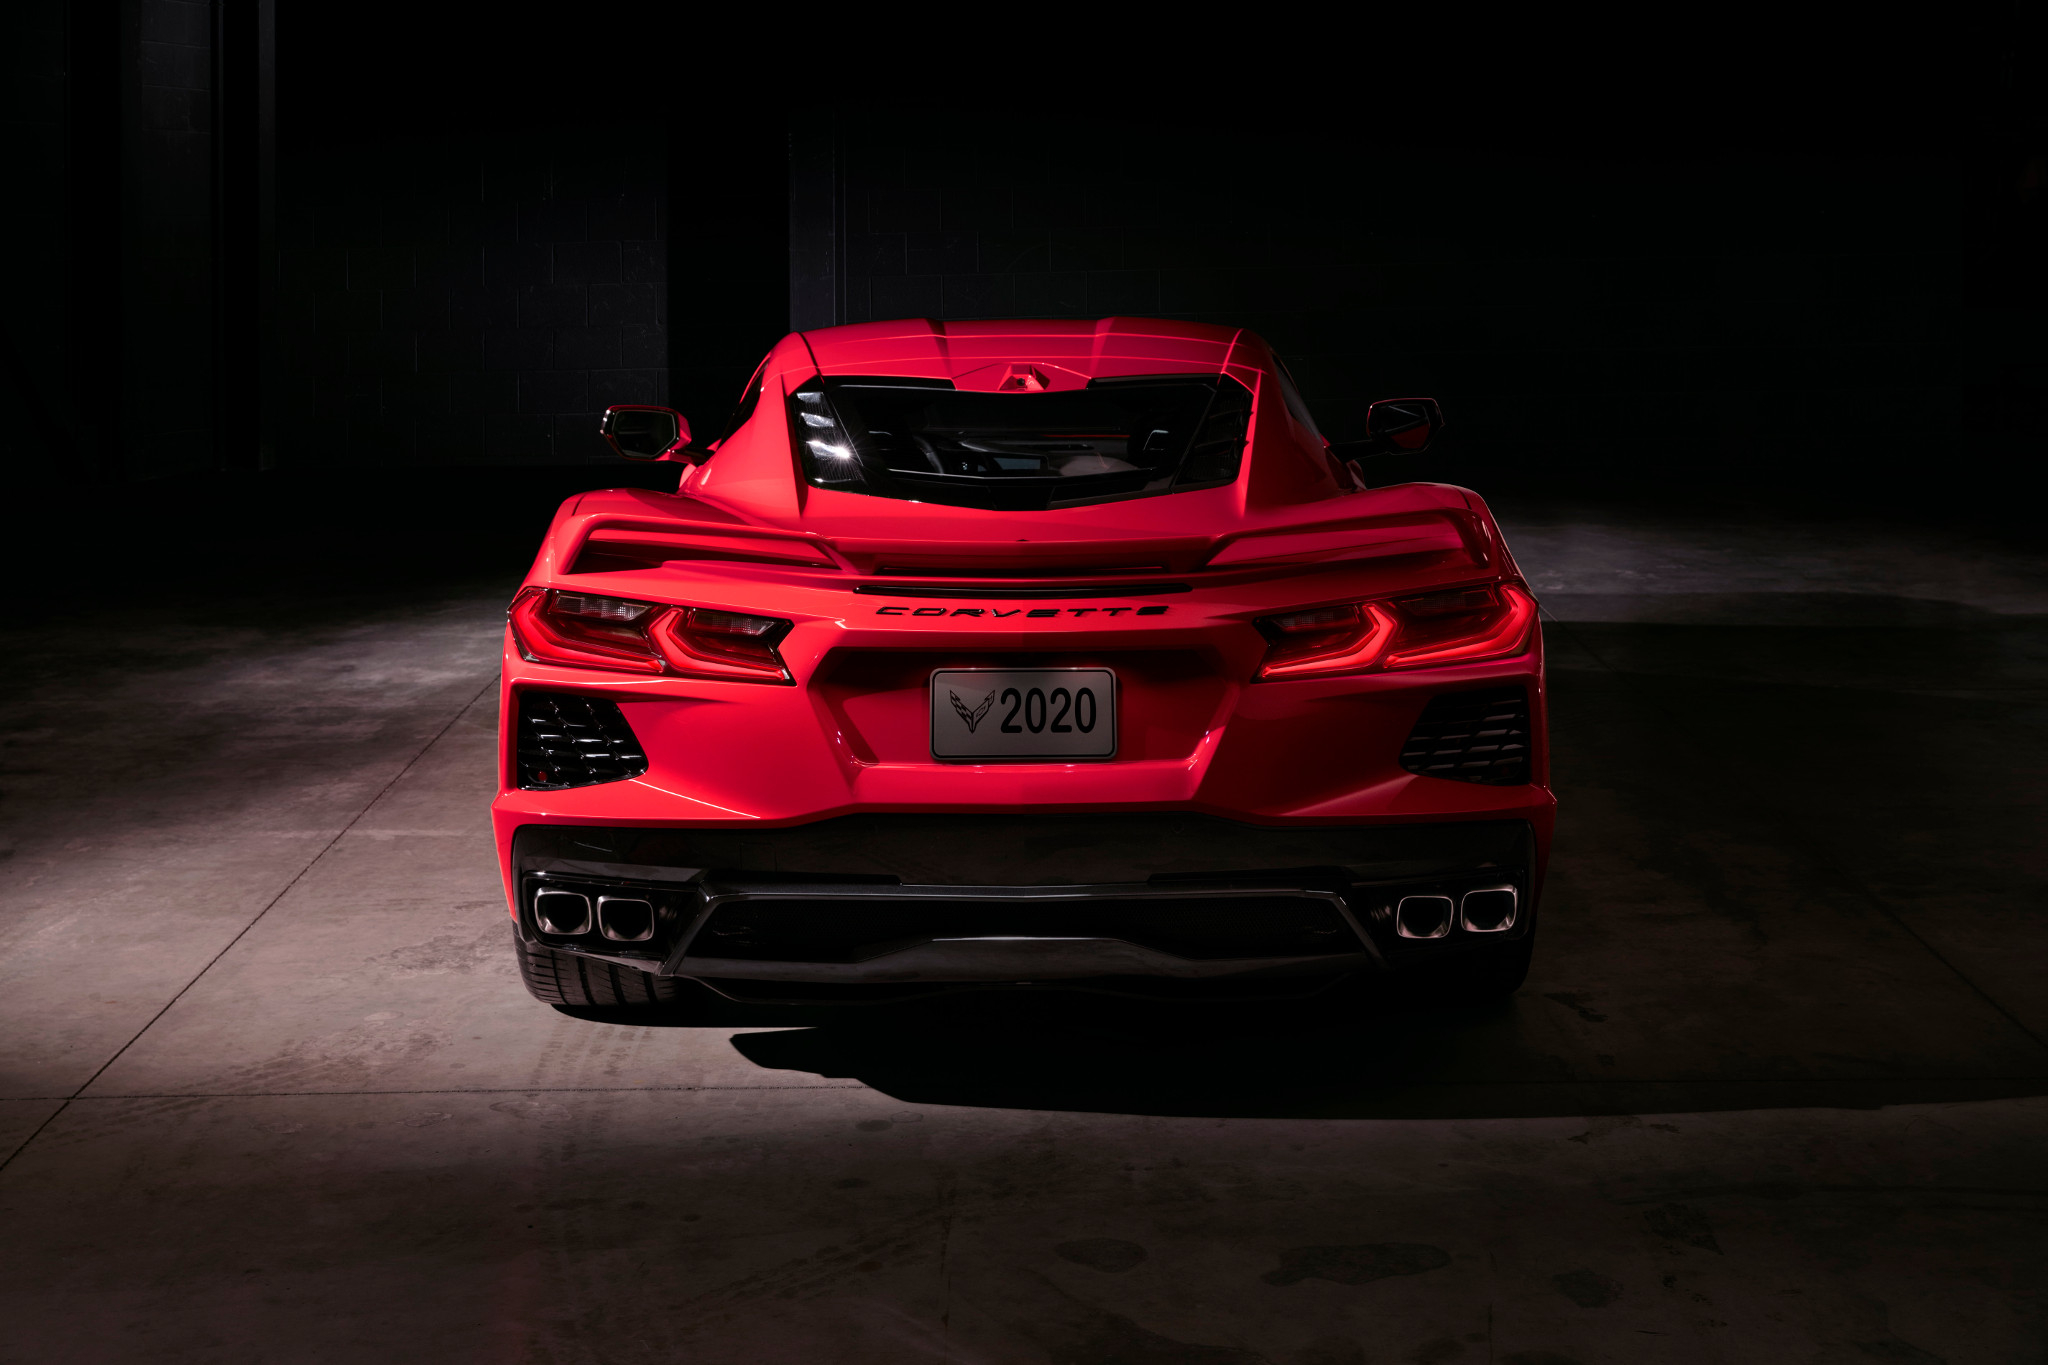 Here's What We Know About The 2020 Chevrolet Corvette   News 2021 Chevrolet Corvette Grand Sport Dimensions, Hp, Interior